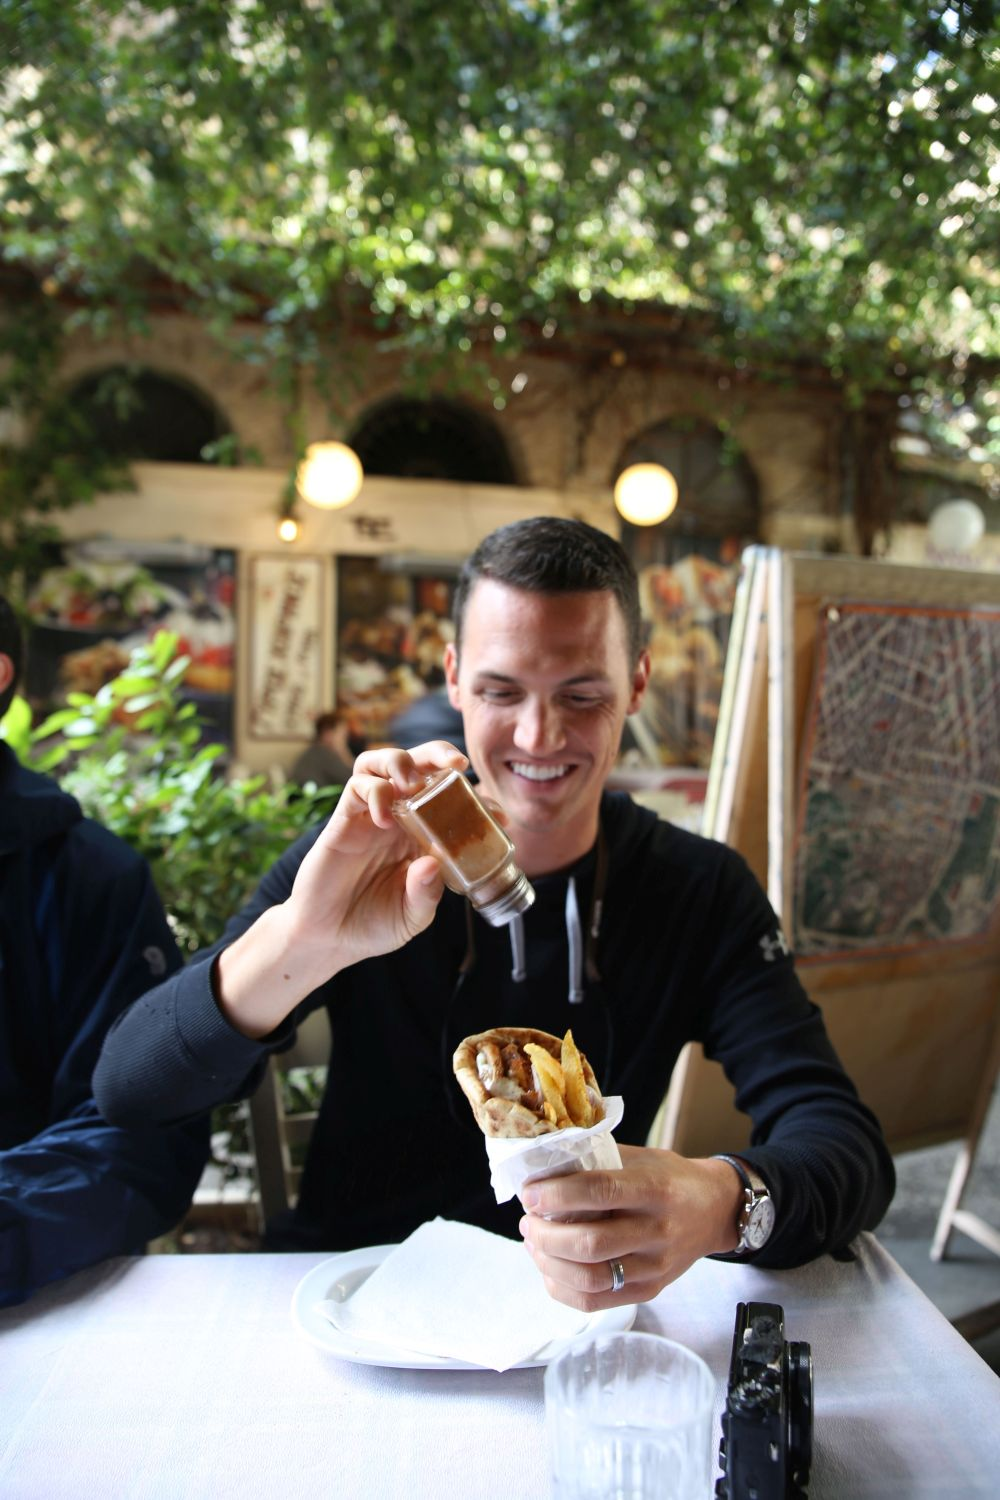 Athens food tour: Ready for the first bite of gyros!